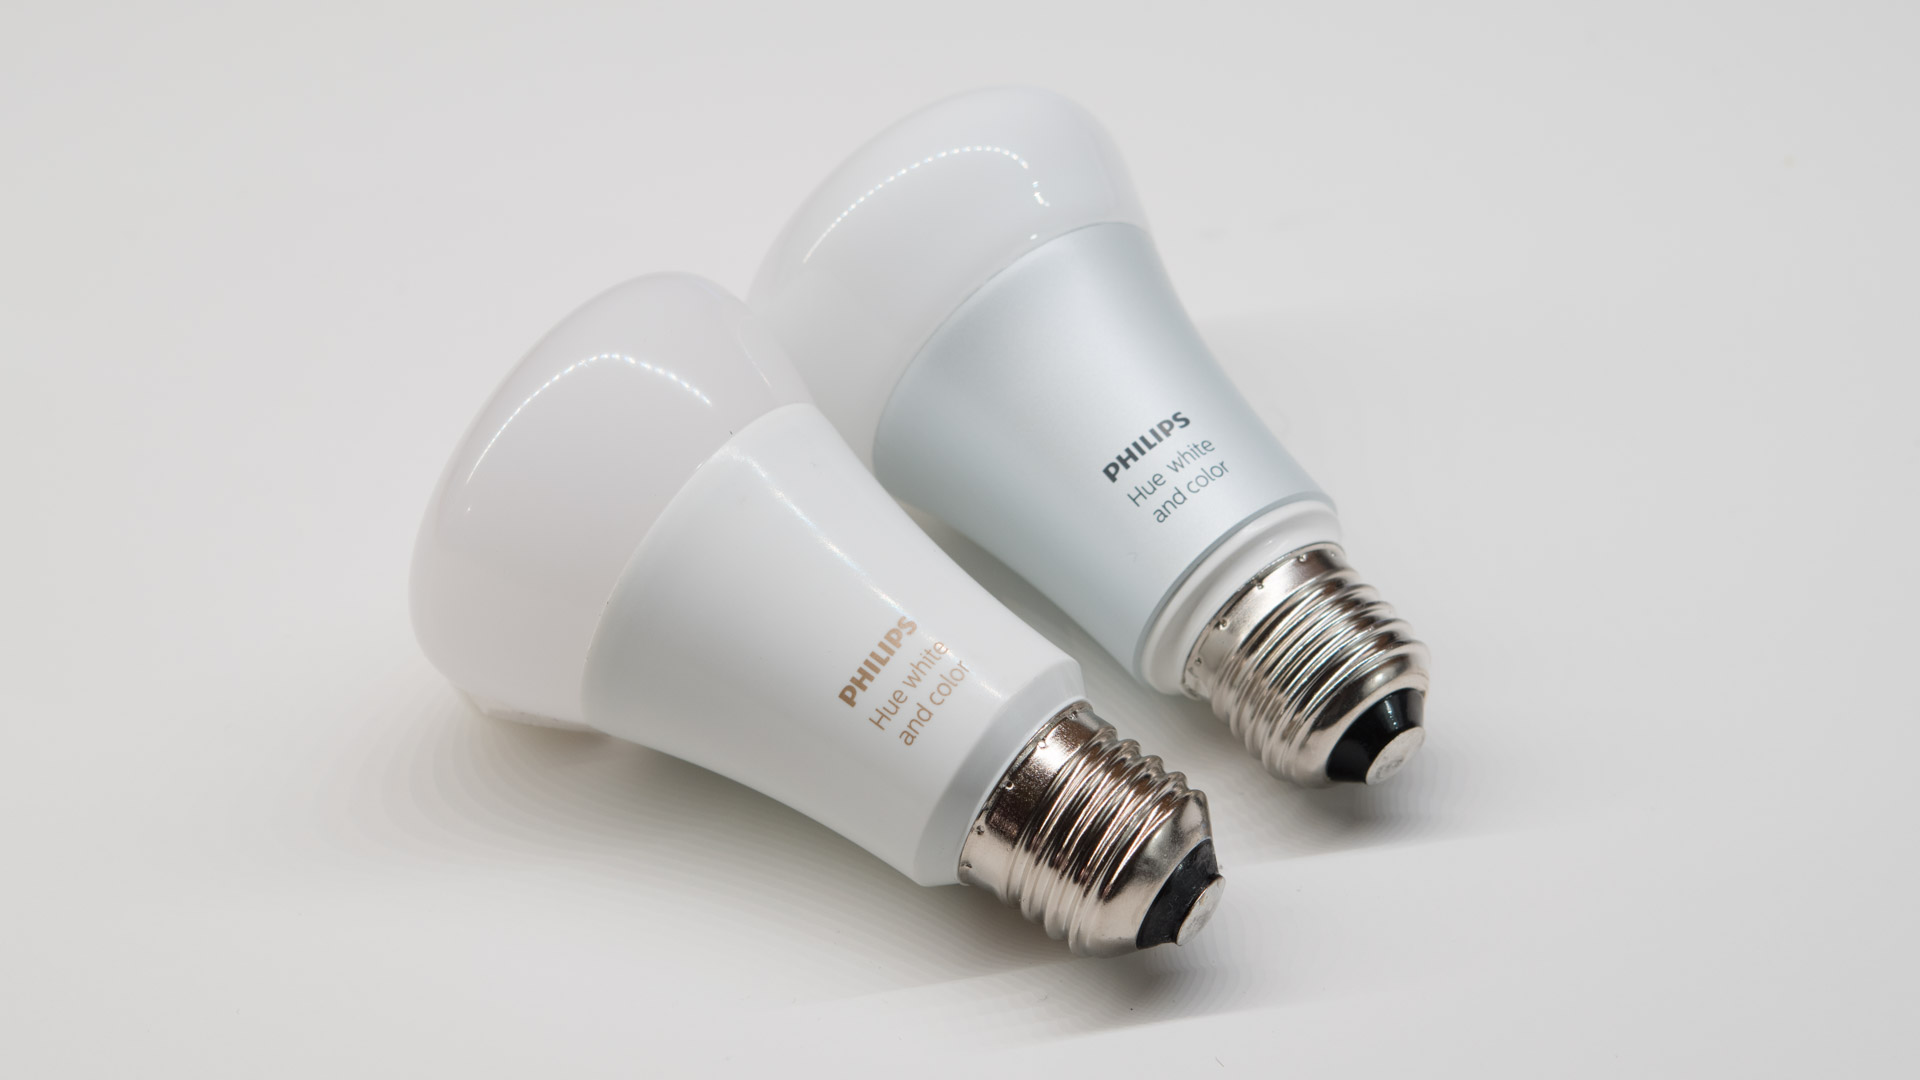 Led Lampen Philips : Led inspection lamps wiederaufladbare uv lampe mit dockingstation